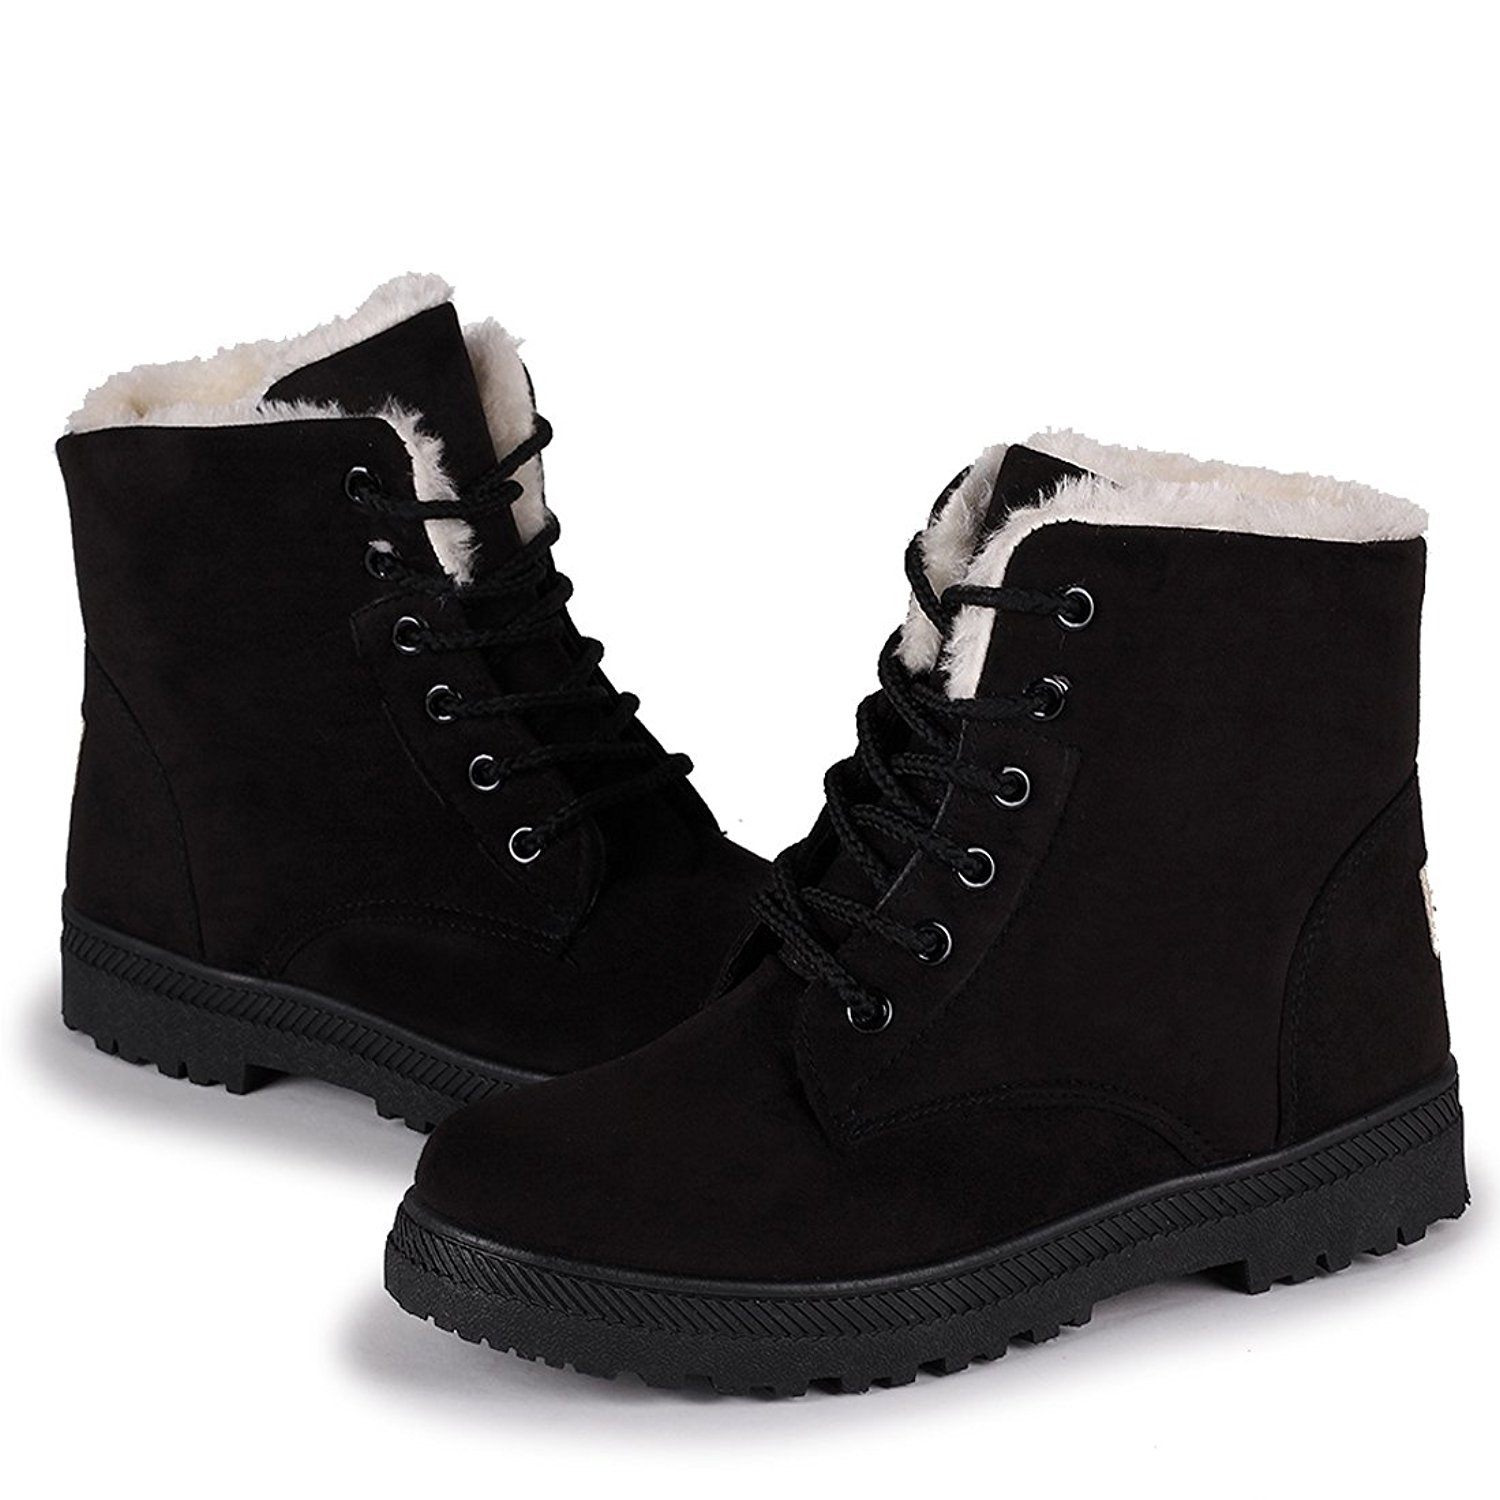 women winter boots amazon.com | susanny suede flat platform sneaker shoes plus velvet winter  womenu0027s ylihgzk